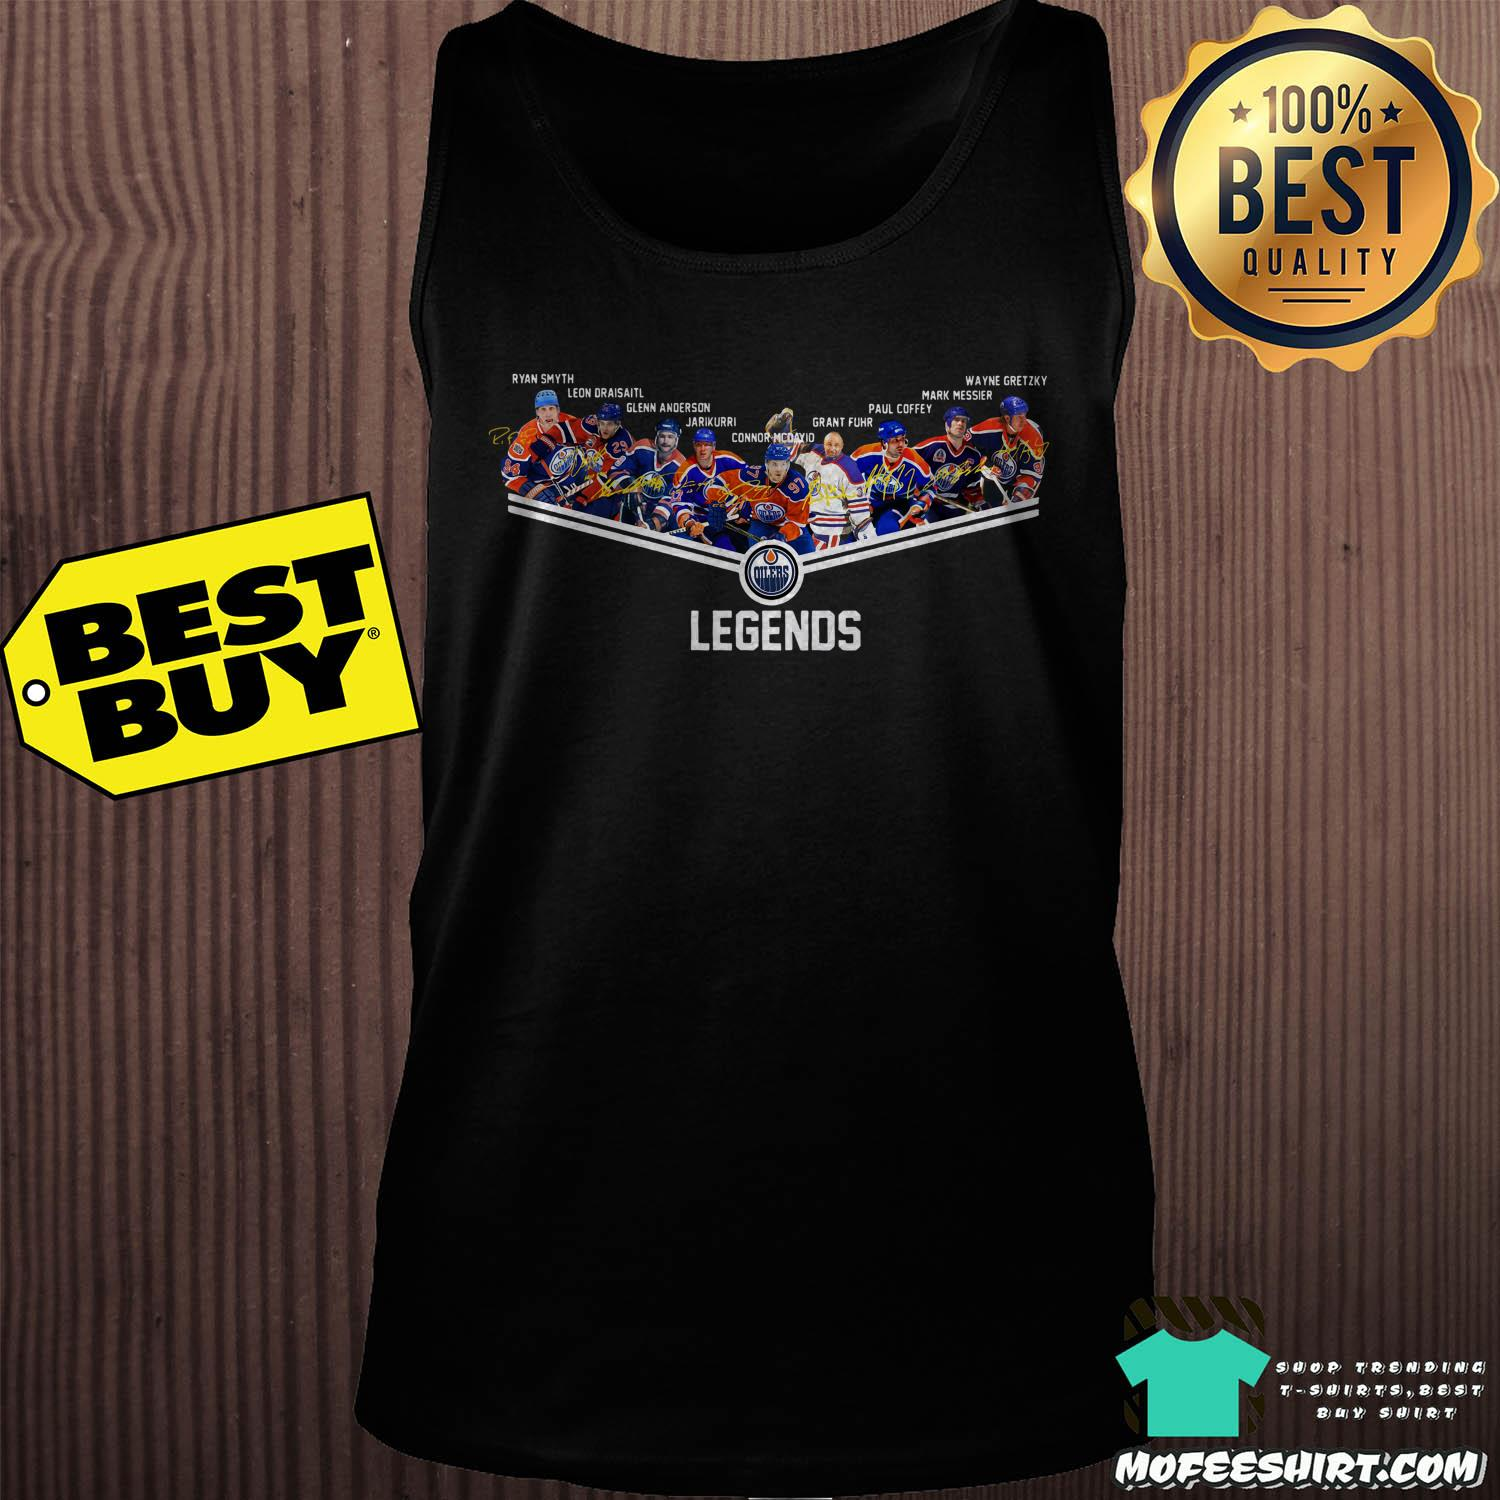 edmonton oilers legend all players signatures tank top - Edmonton Oilers legend all players signatures shirt